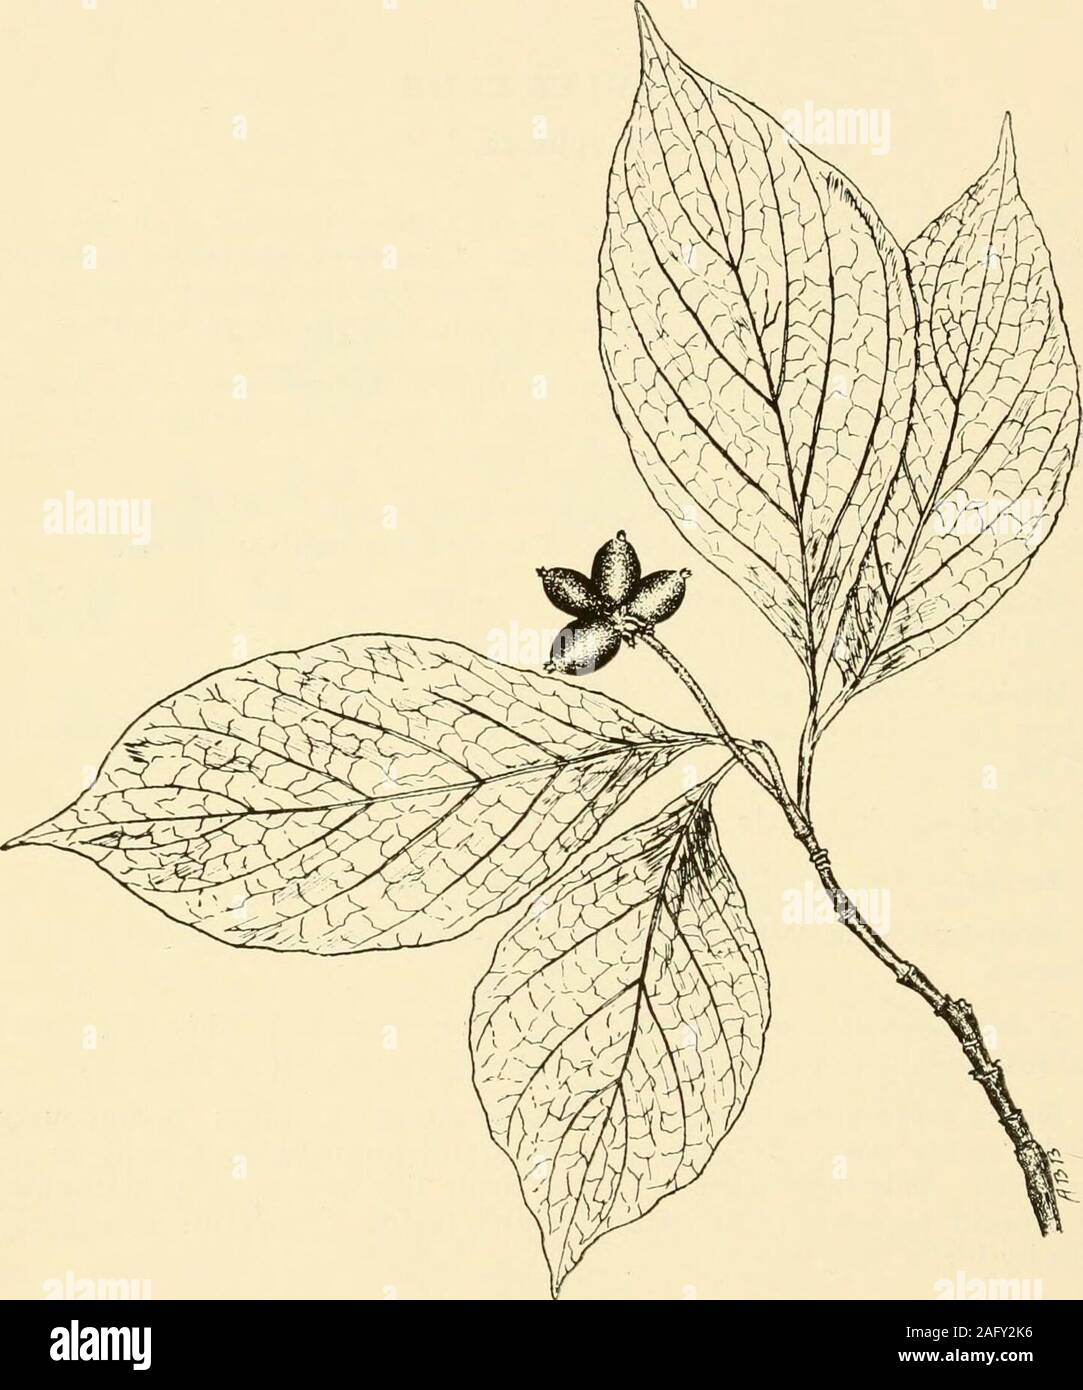 . West Virginia trees. th. Flowers.— June-August; polygamous; cream white, arranged inlarge, spreading panicles made up of numerous small umbels. Fruit.—Matures in autumn; an ovoid black berry al)Out j4 inchlong each terminated with a black persistent style. Bark.—Smooth, except on old trunks which are roughened byshallow furrows; broAvn outside, yellow inside, coxered with stoutprickles. Wood.—Soft, brittle, weak, brown with yellow streaks. Range.—New Yoik to Missouri and southward. Distribution in West Virginia.—Common locally west of the Al-leghanies. Habitat.—Often associated with grape vi Stock Photo